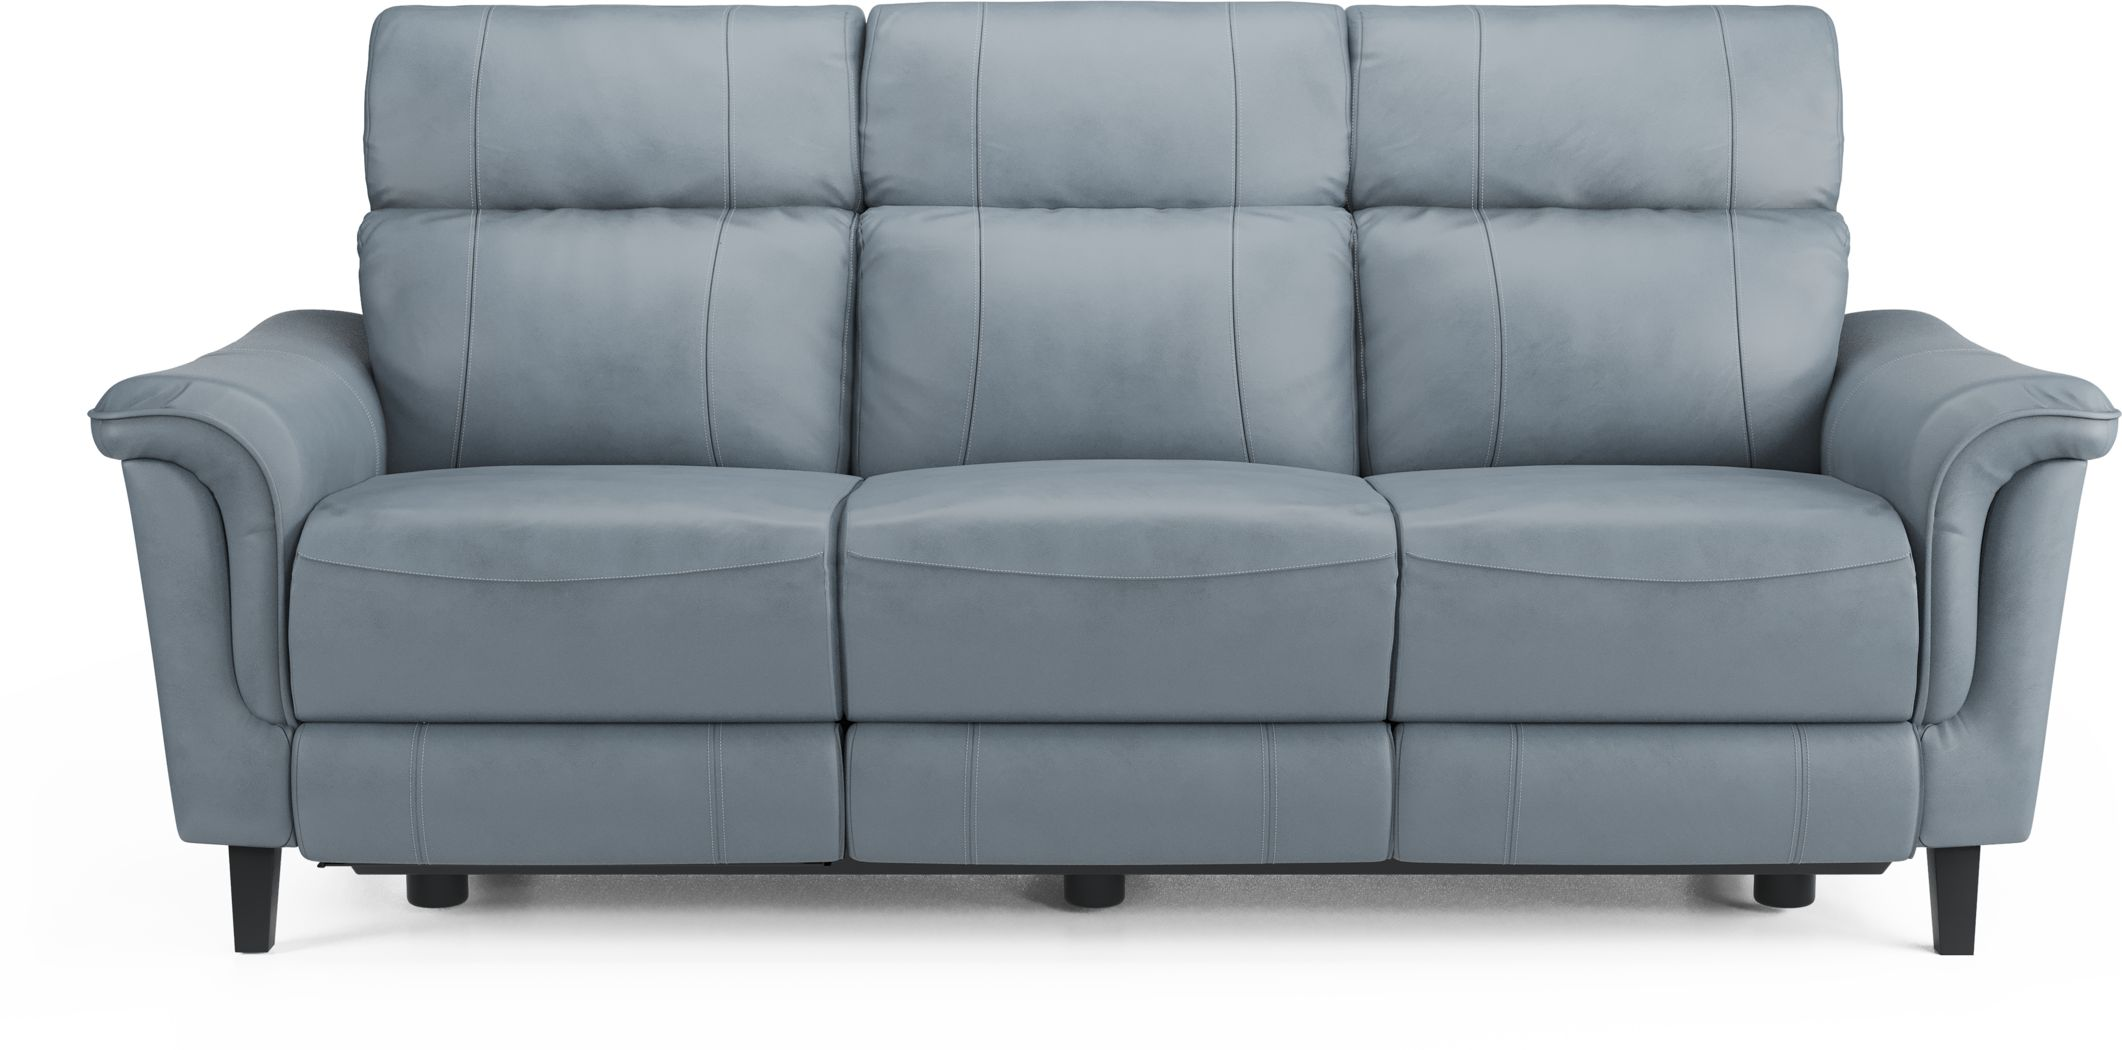 Blue Leather Sofas Couches